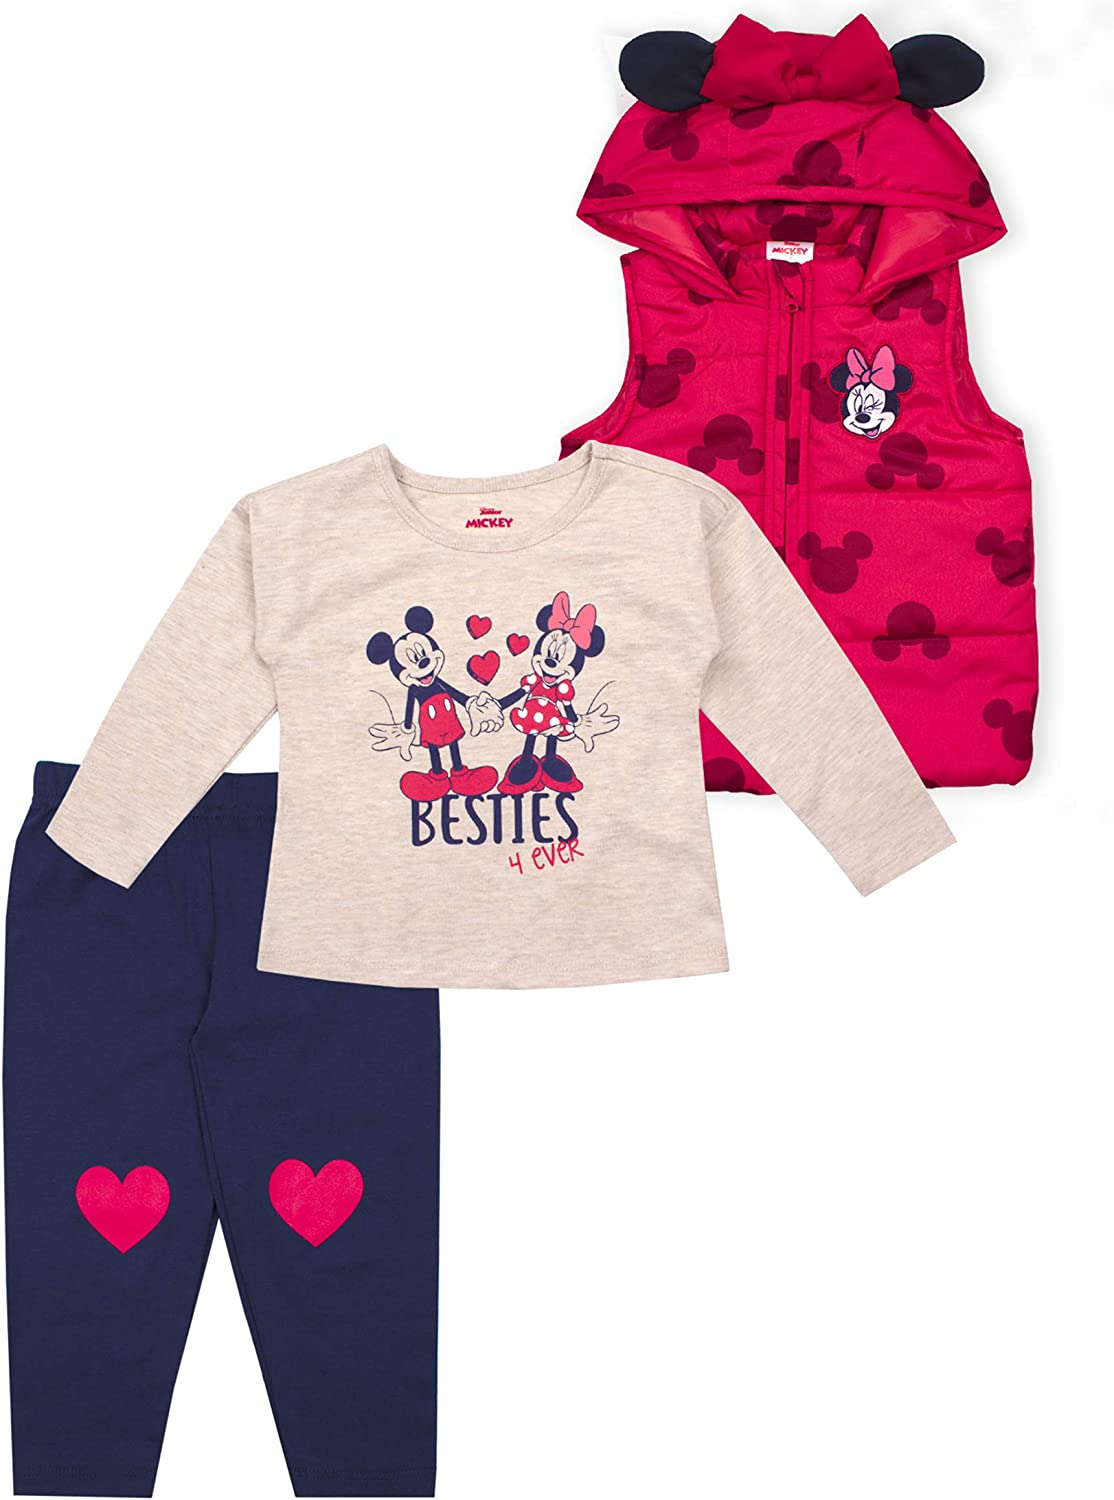 Disney 3-Piece Minnie Mouse Clothes for Girls and Toddlers, Shirt, Vest, and Pants